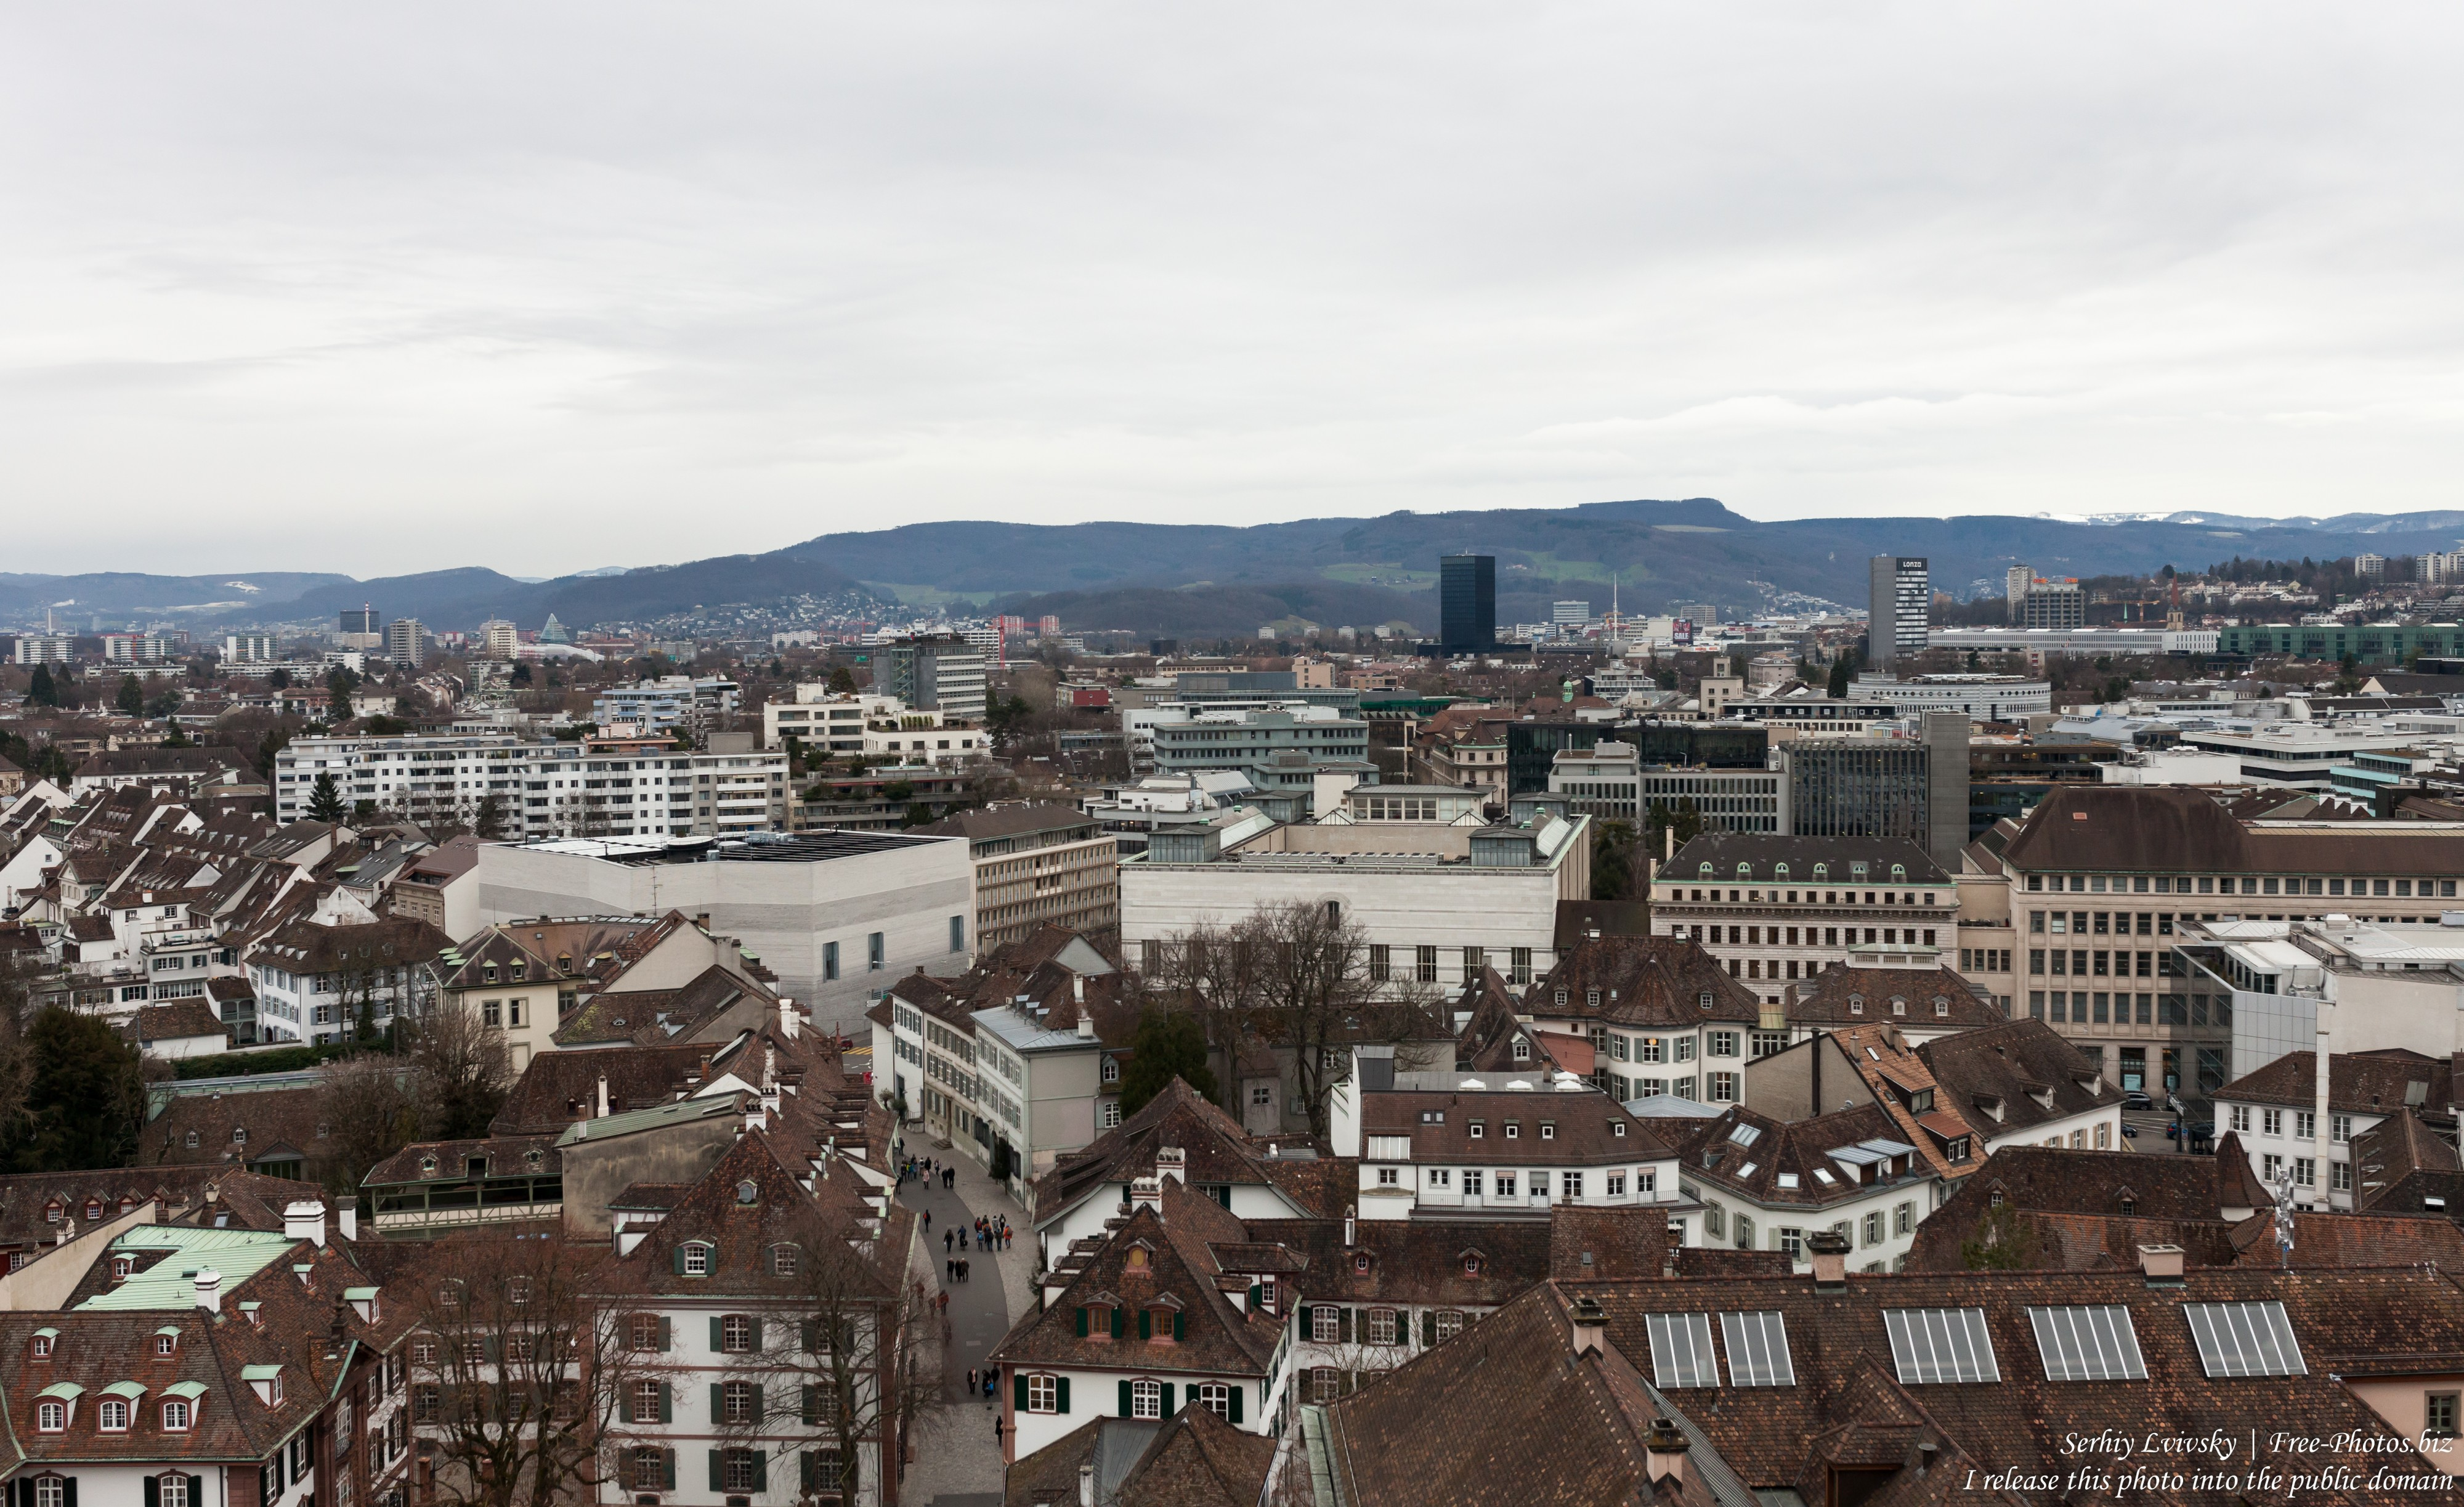 Basel, Switzerland photographed in December 2017 by Serhiy Lvivsky, picture 24